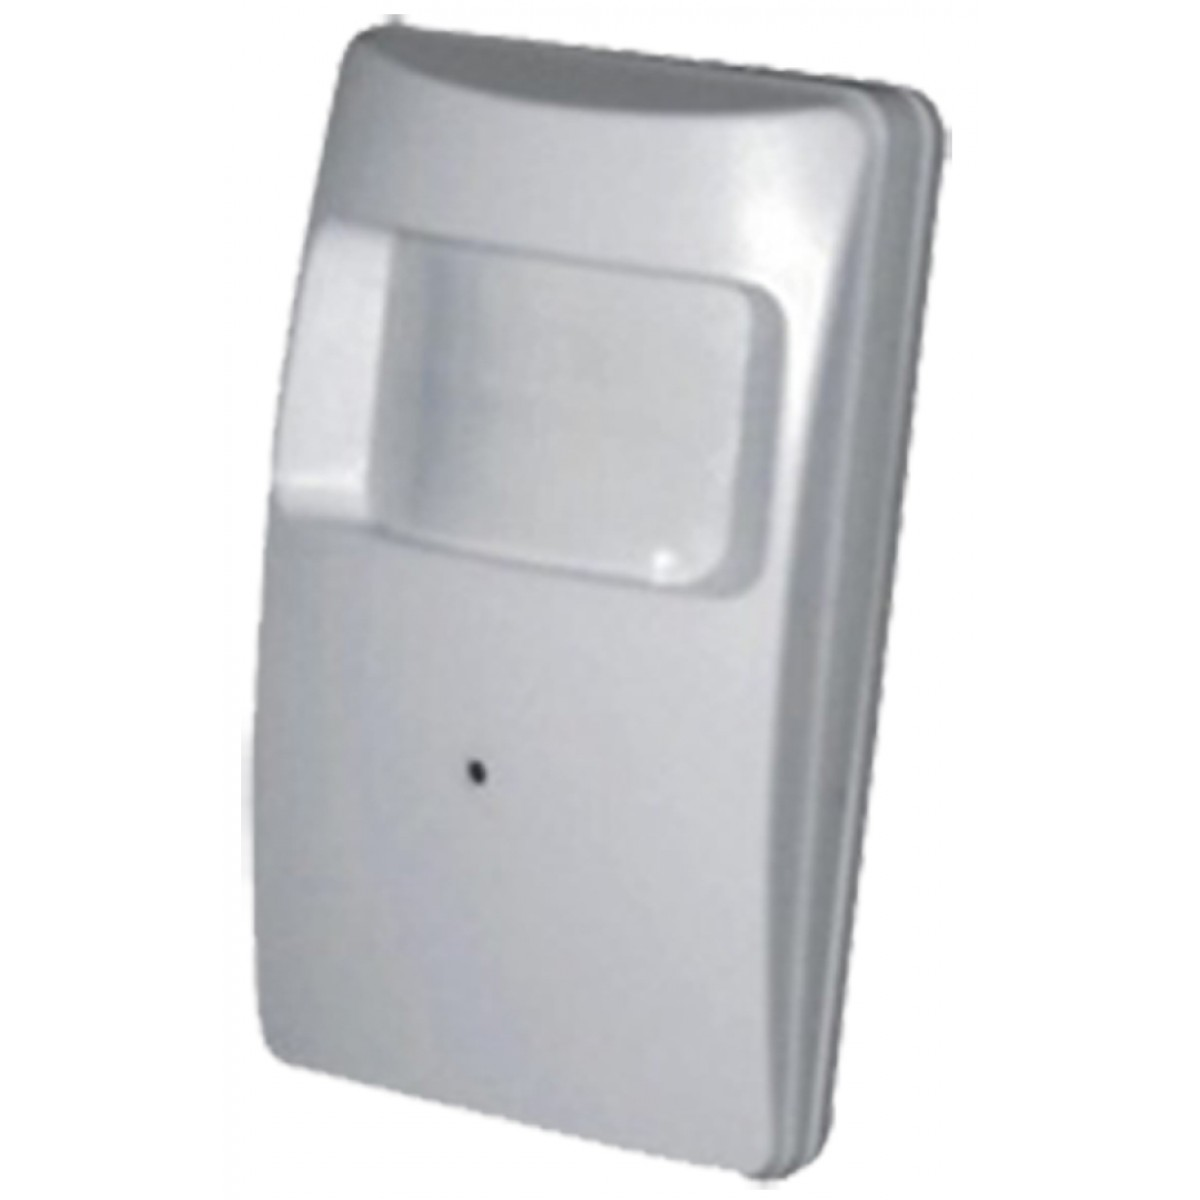 Security Alarm System Specifications